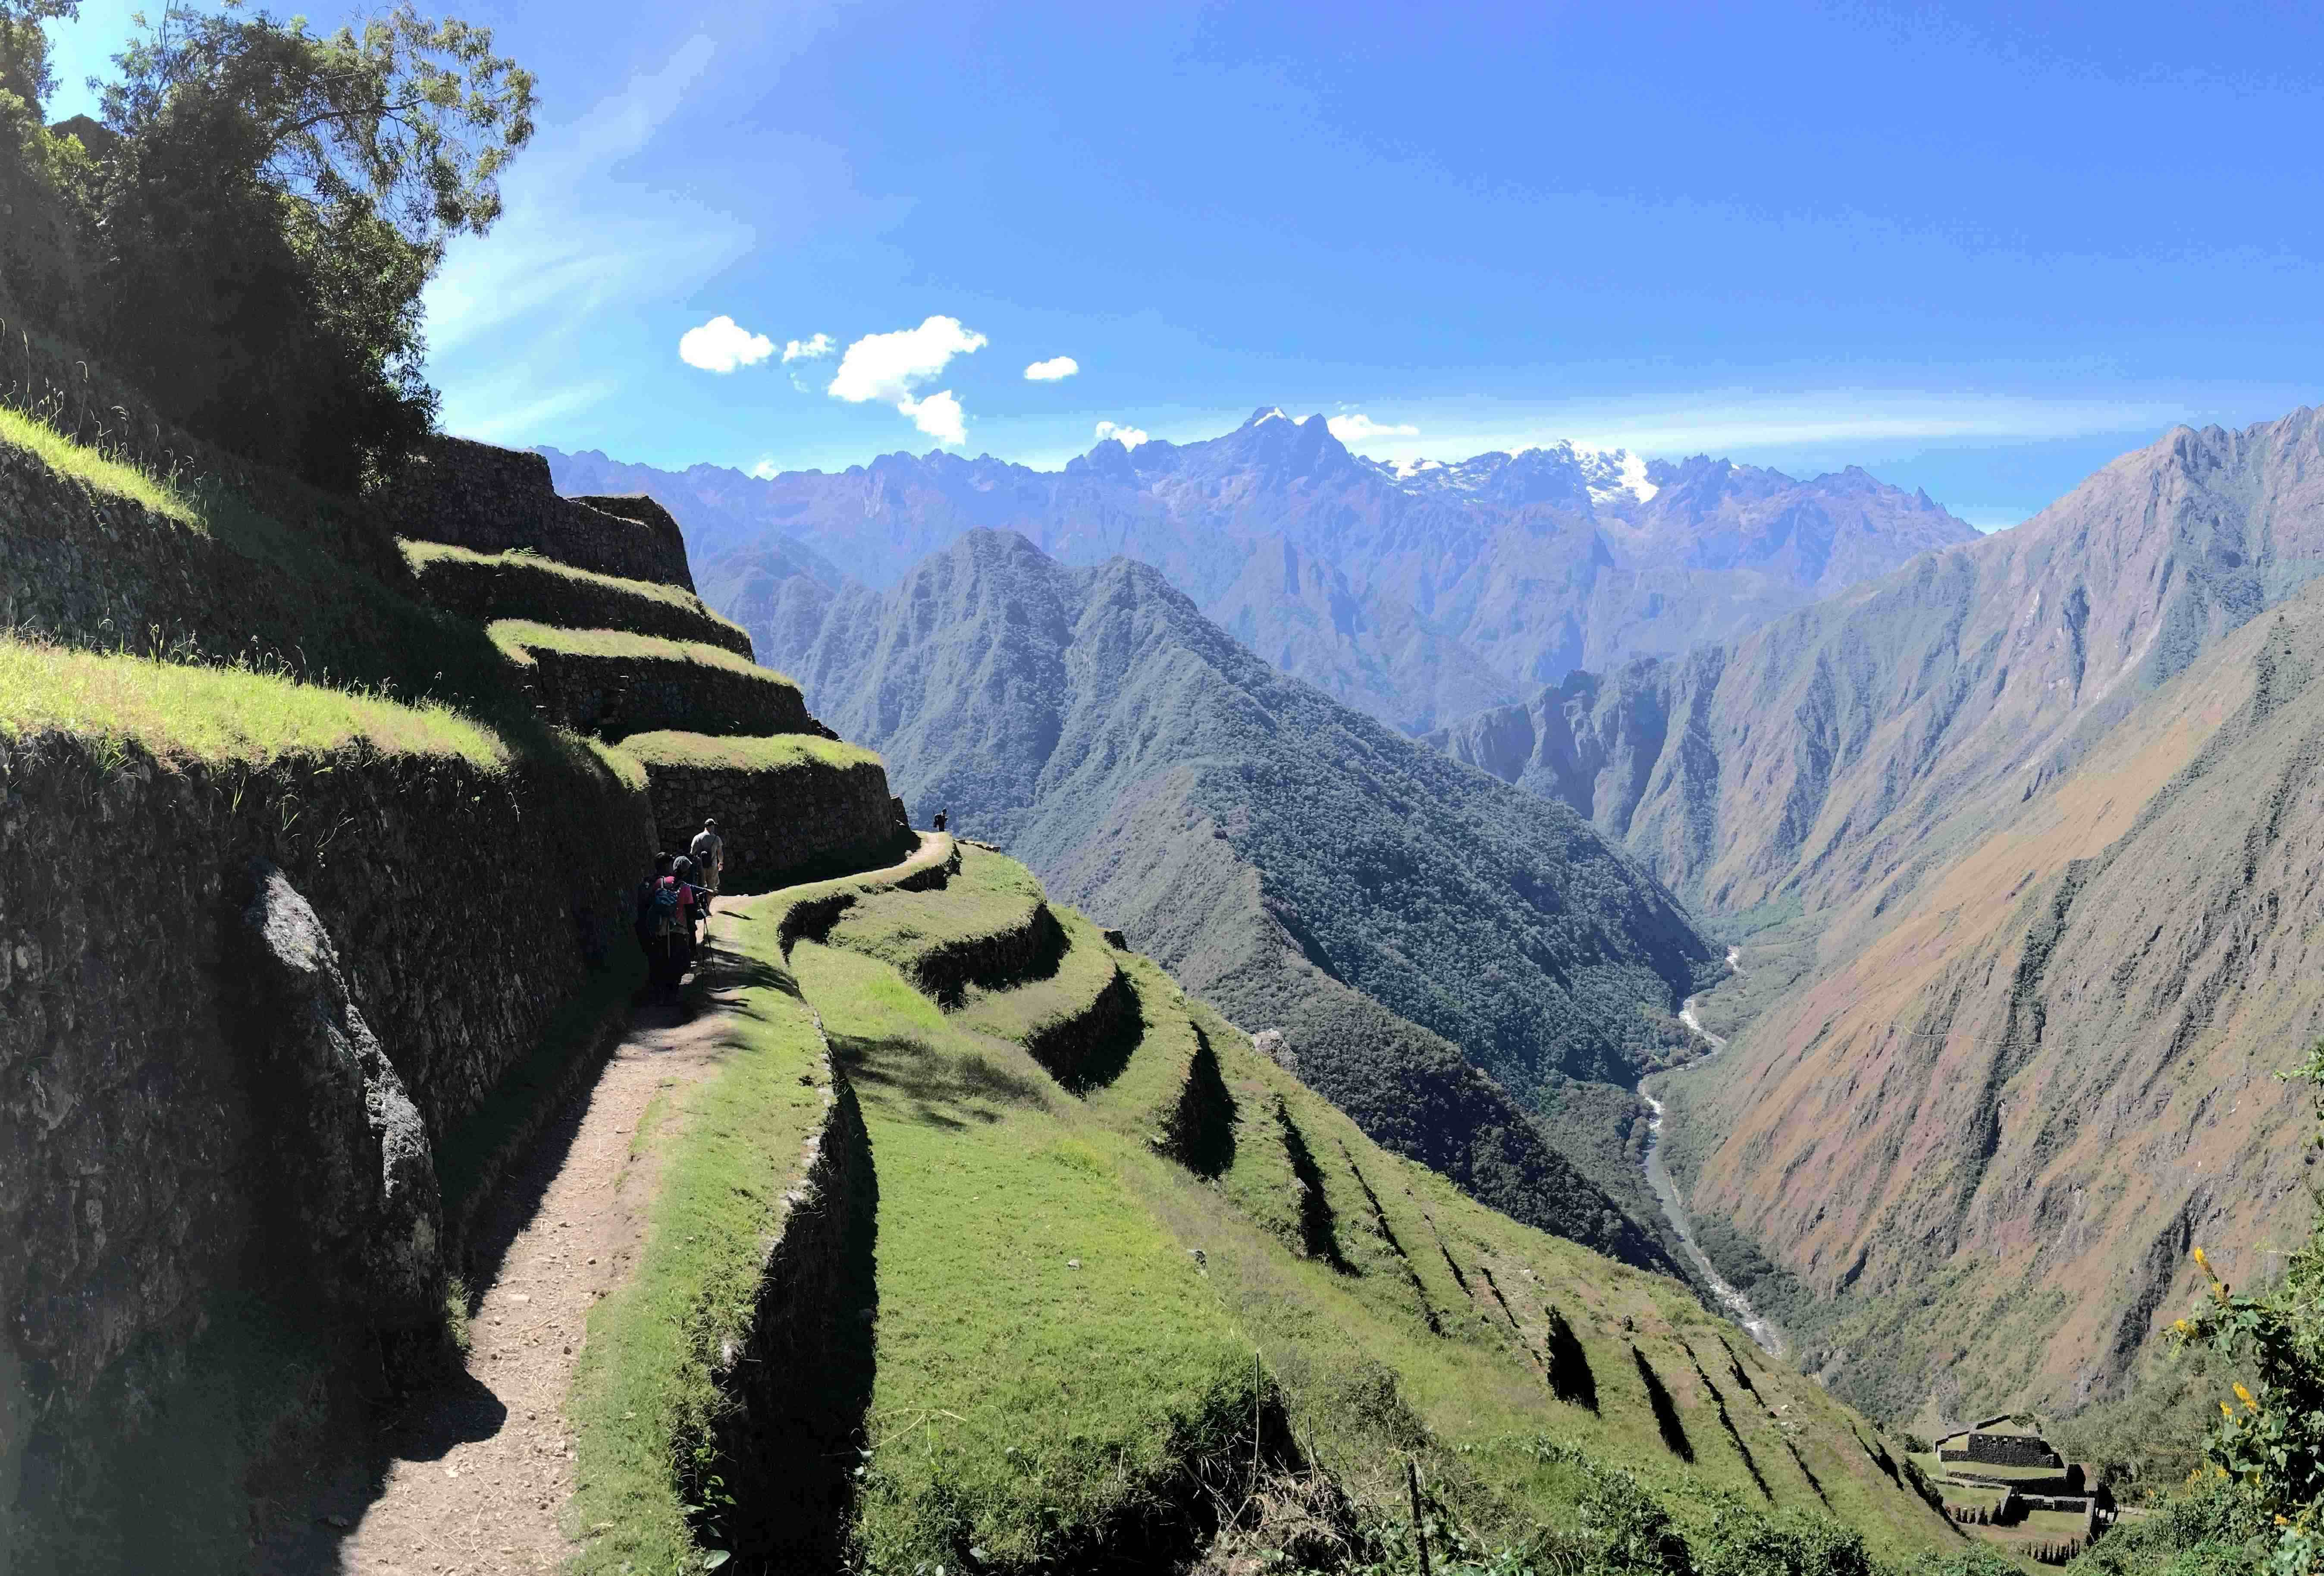 The view from the site of an Inca ruin along the trail. This picture was taken on the first day of the hike.